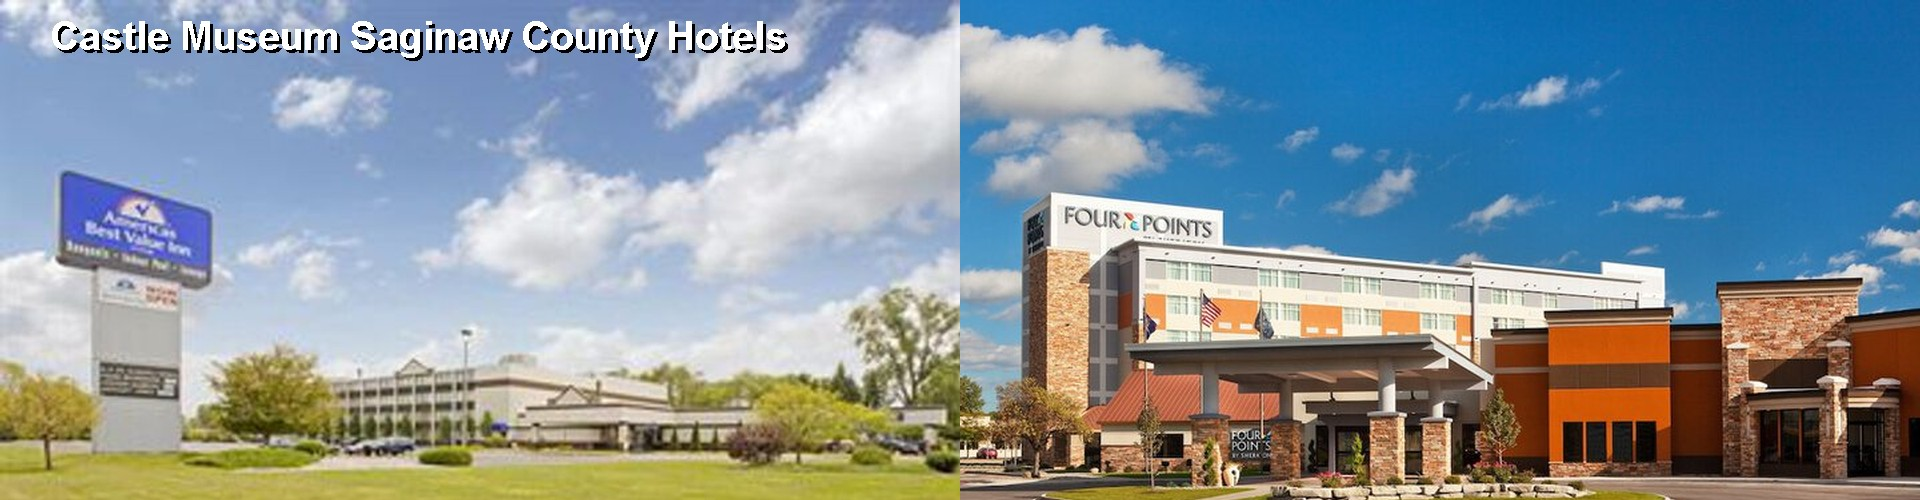 5 Best Hotels near Castle Museum Saginaw County